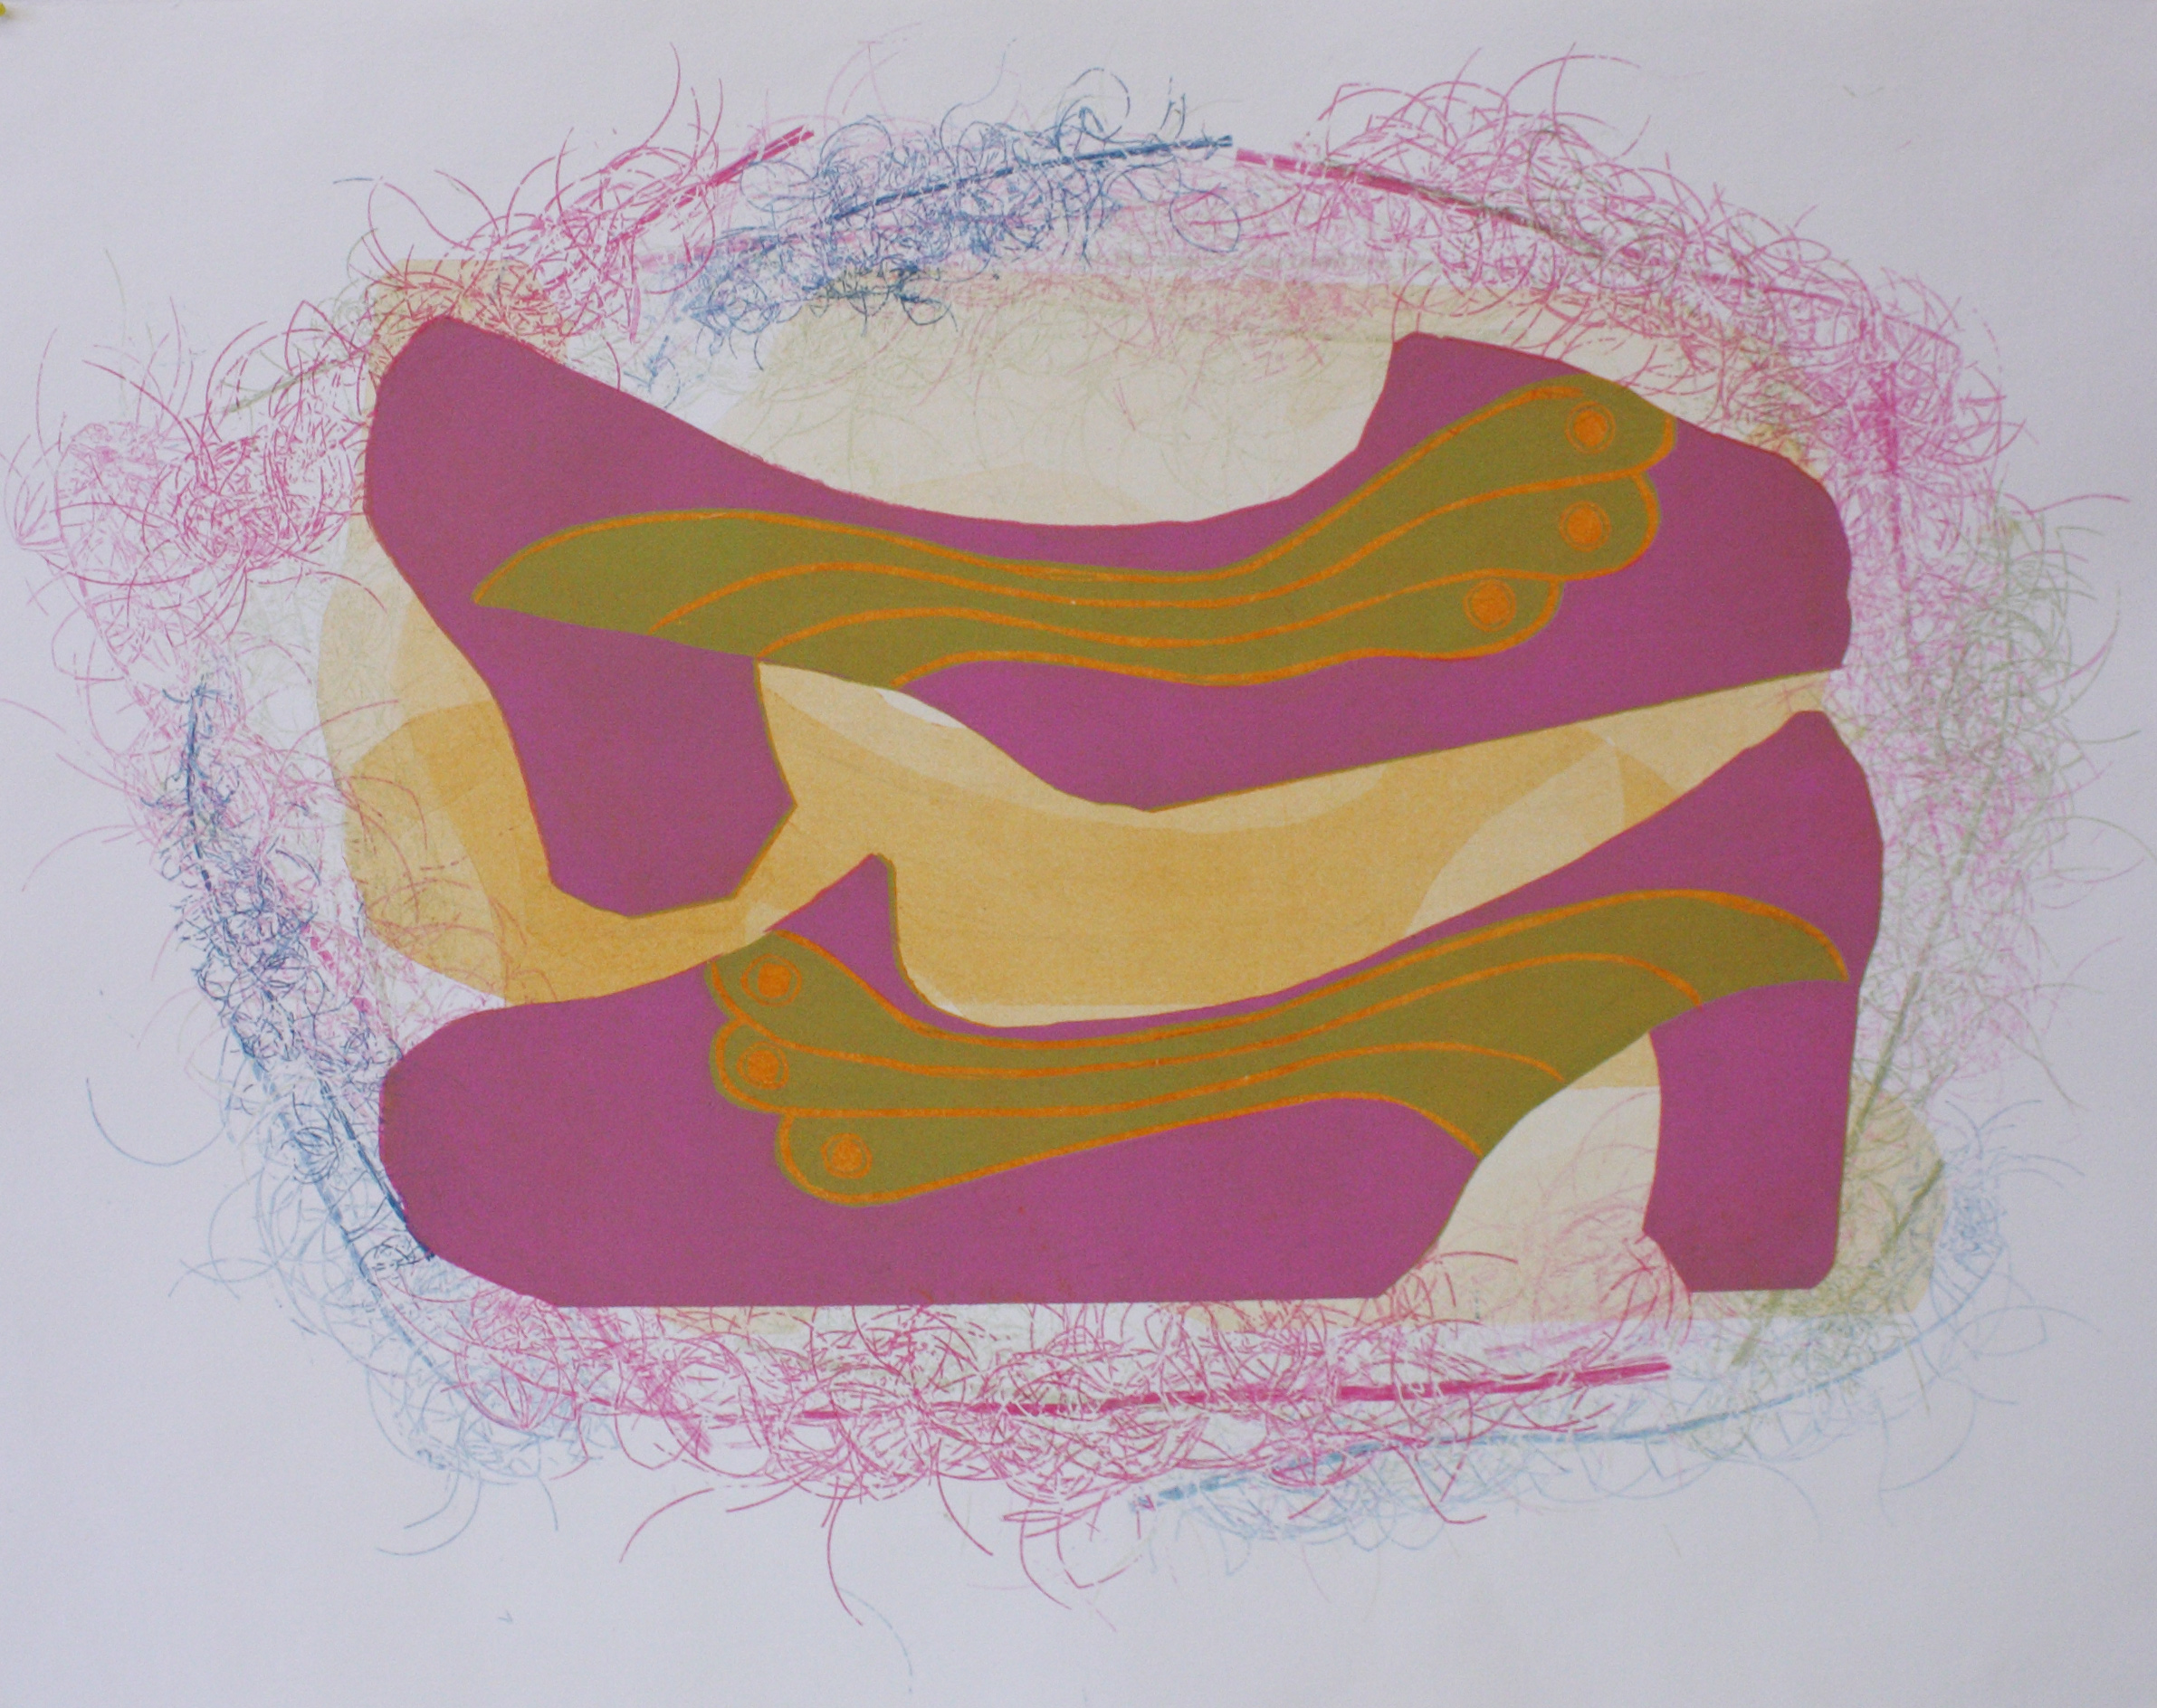 Pinkit kengät/Pink shoes 2019, kohopaino, monotypia/relief print, monotype, 52x68cm